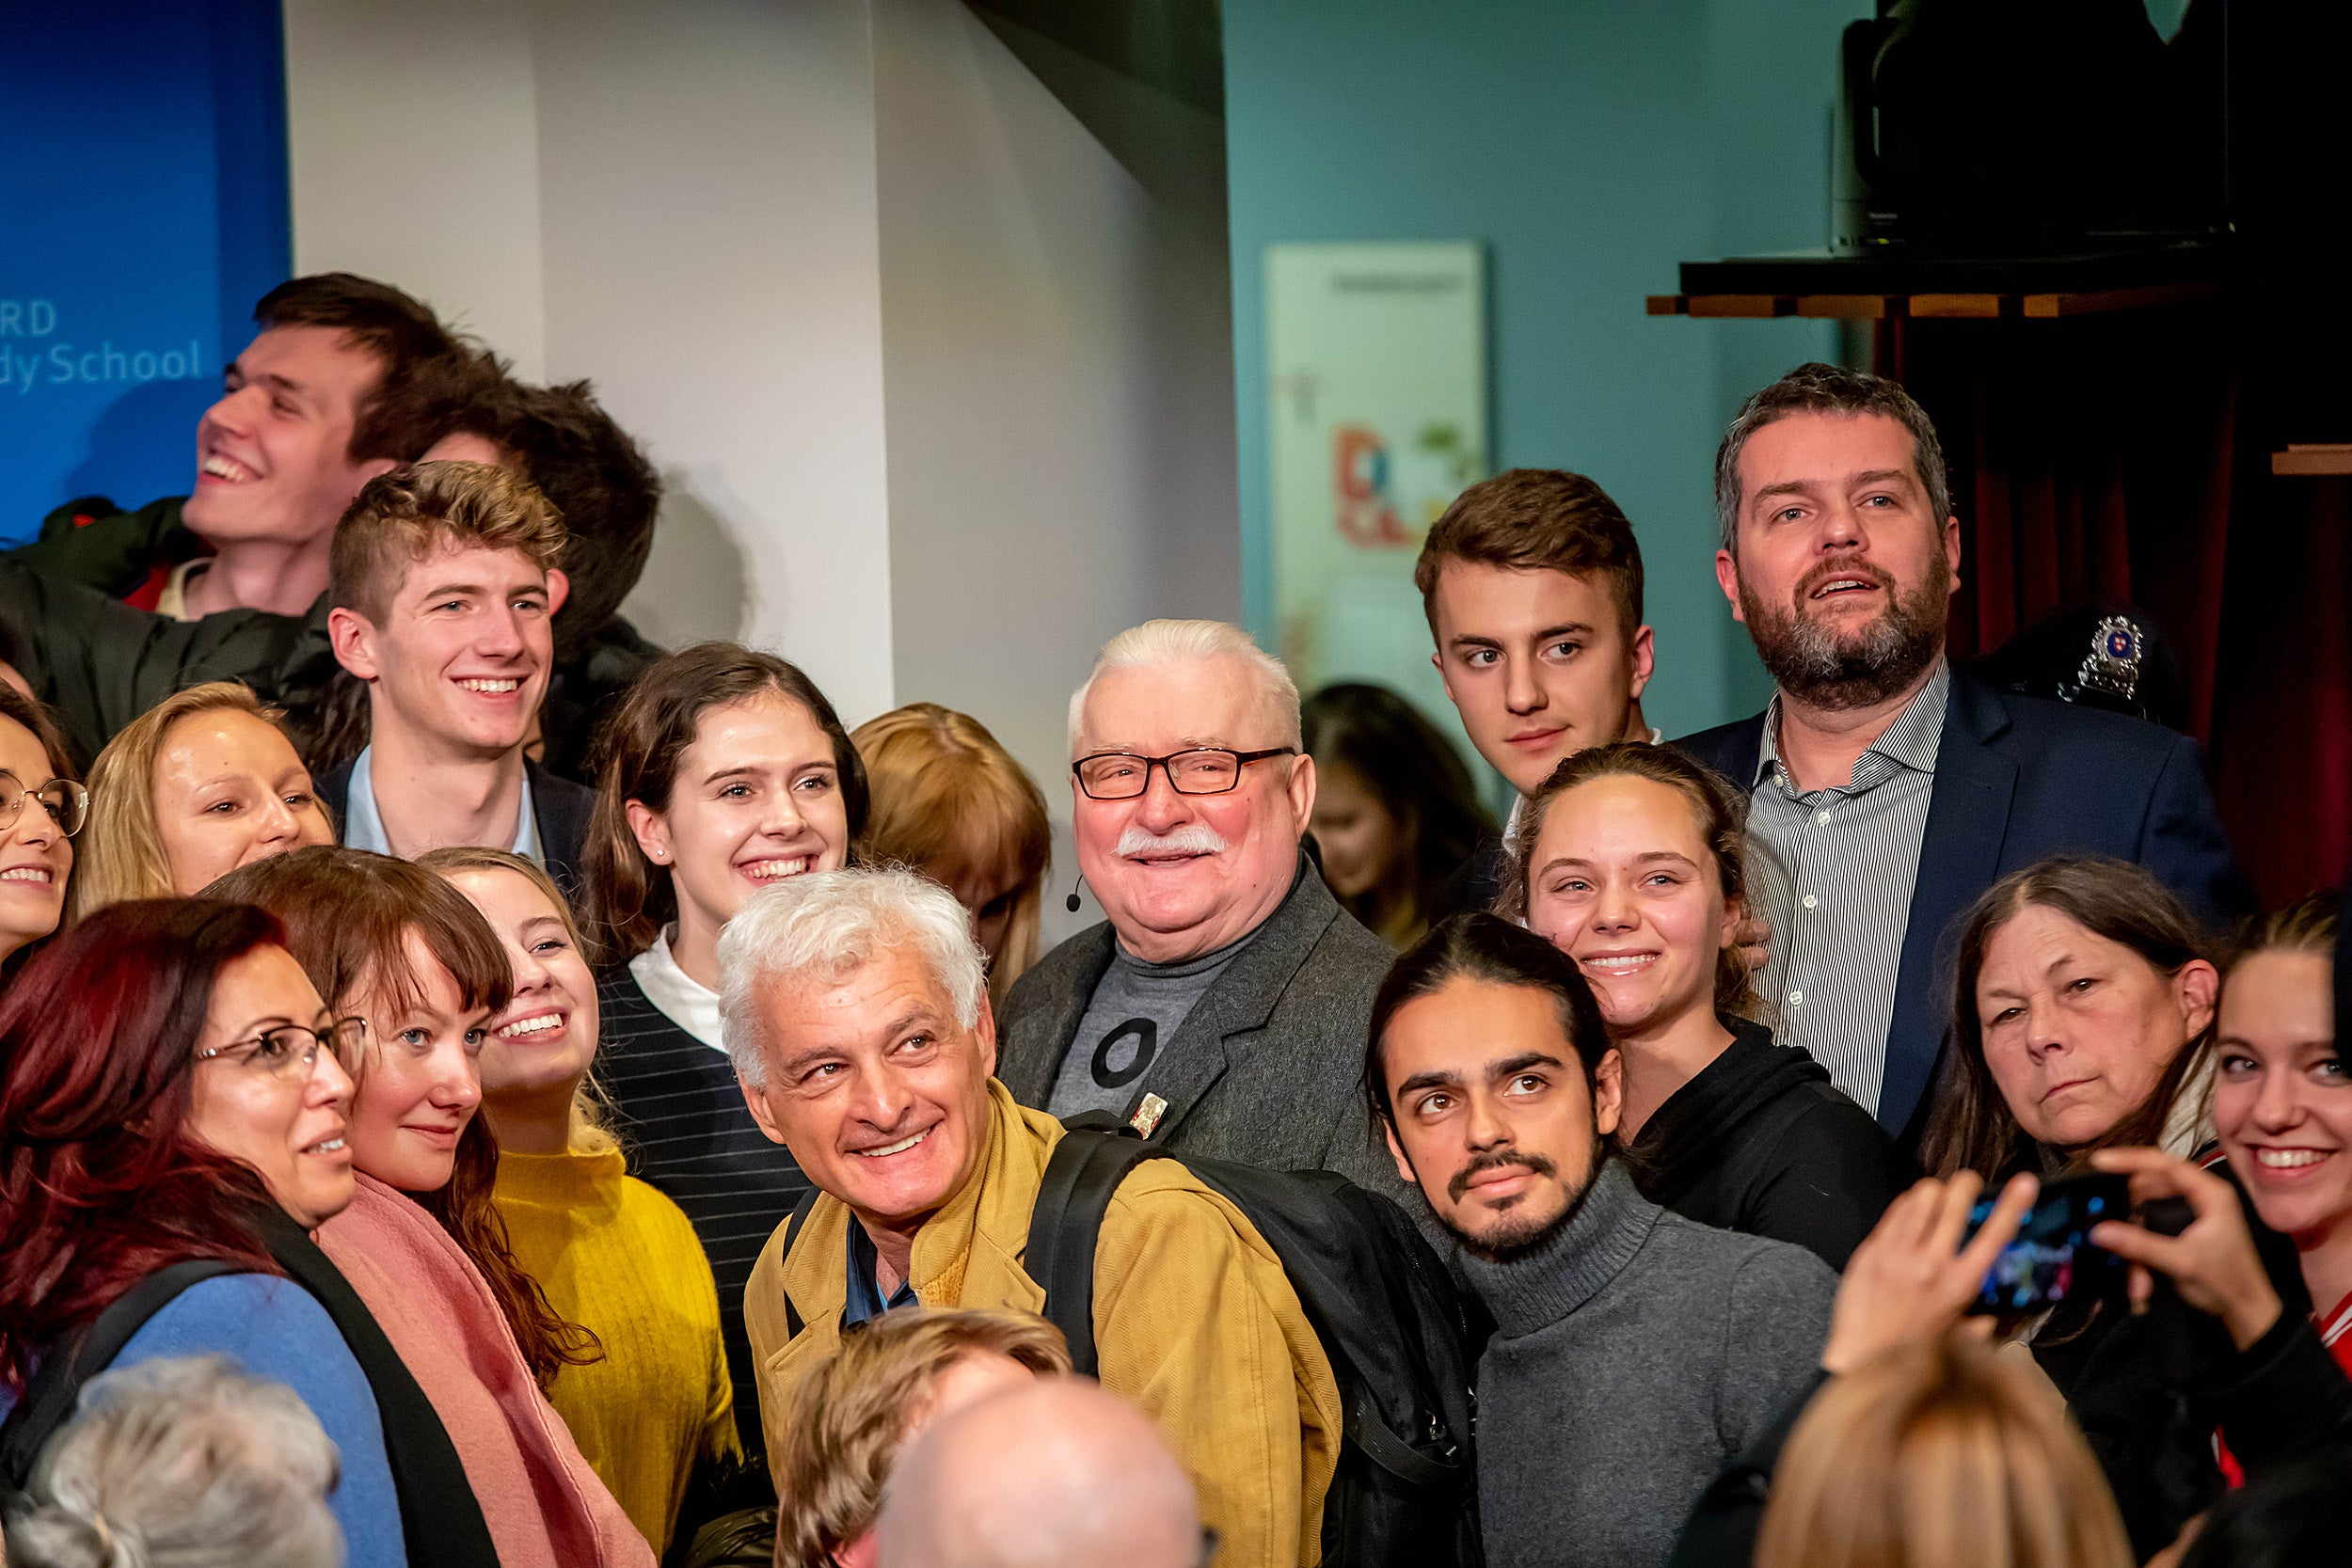 Walesa with students and others.